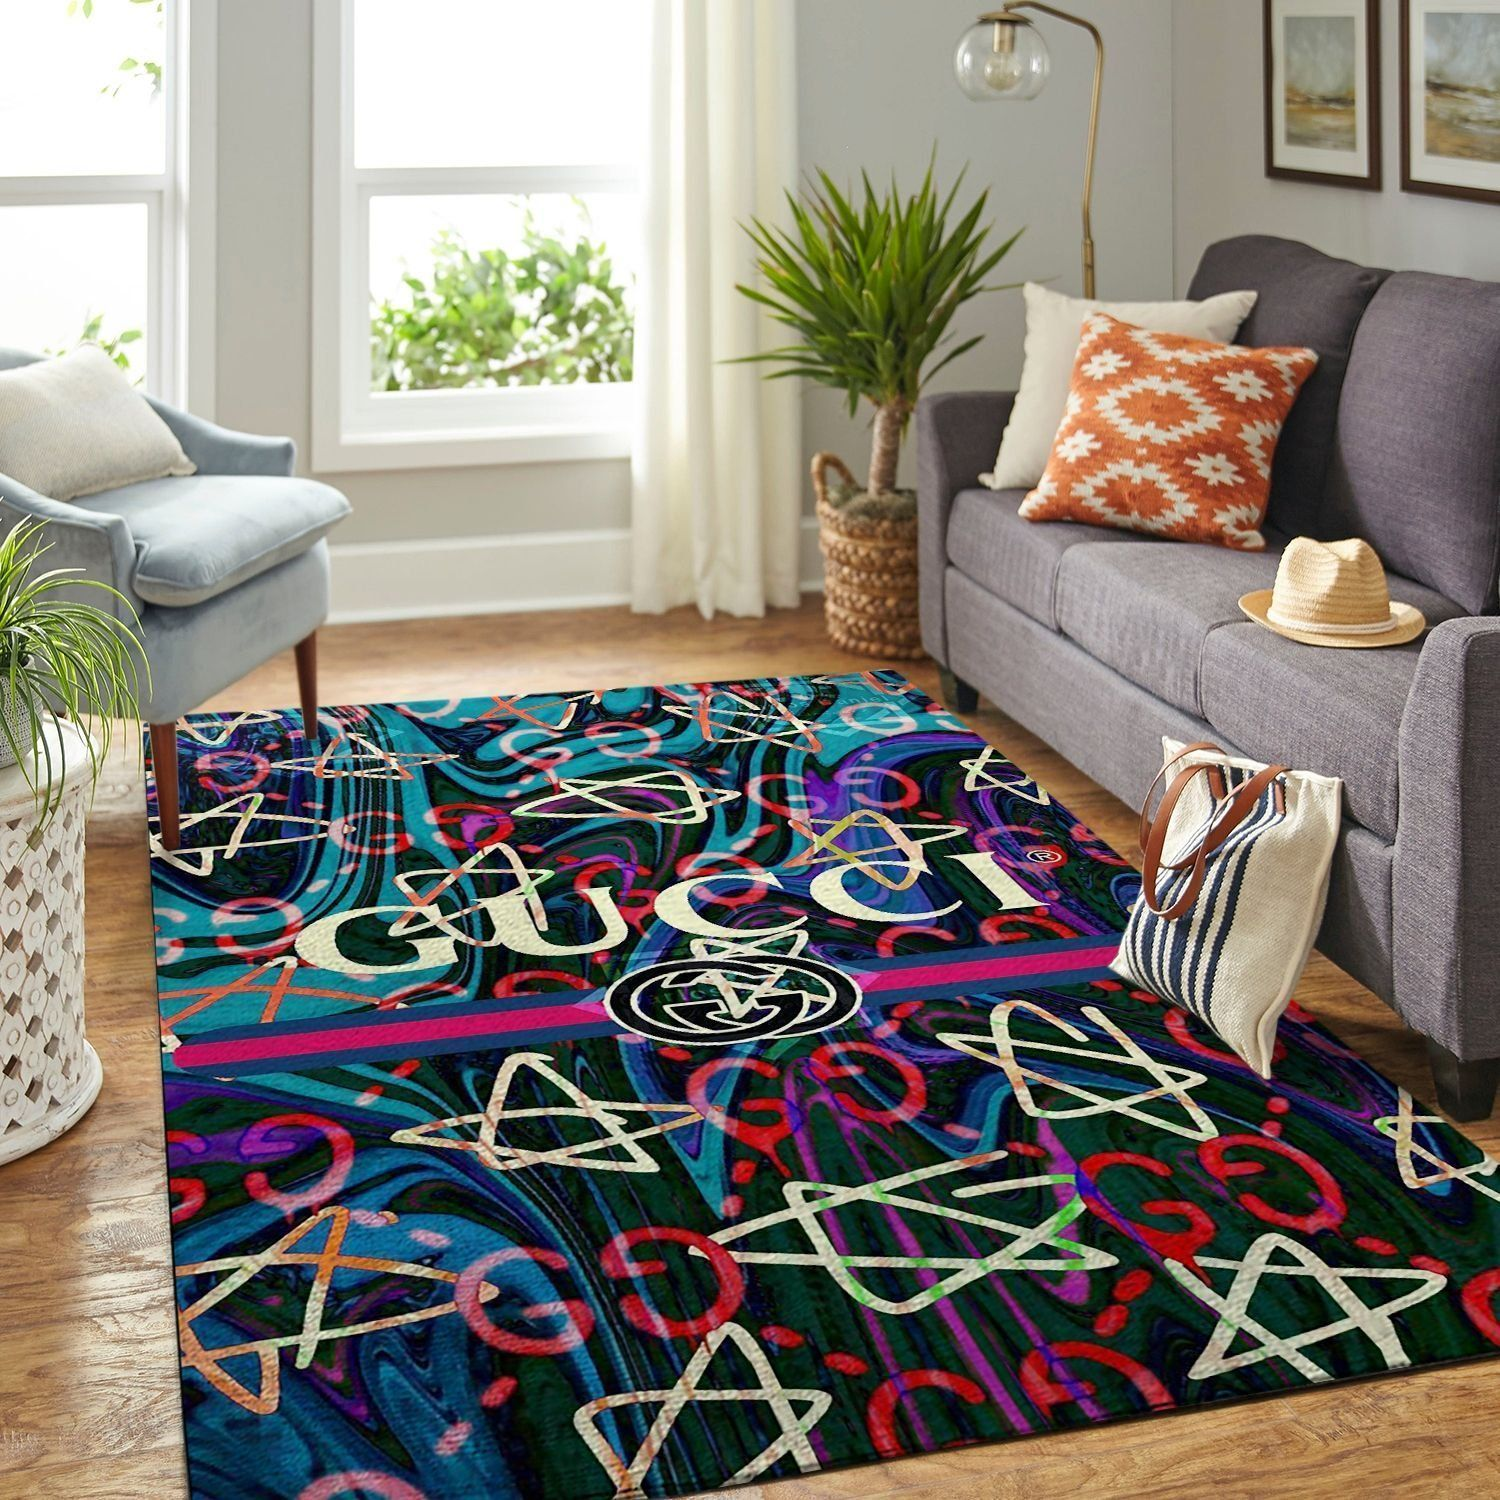 Amazon Gucci Living Room Area No1842 Rug